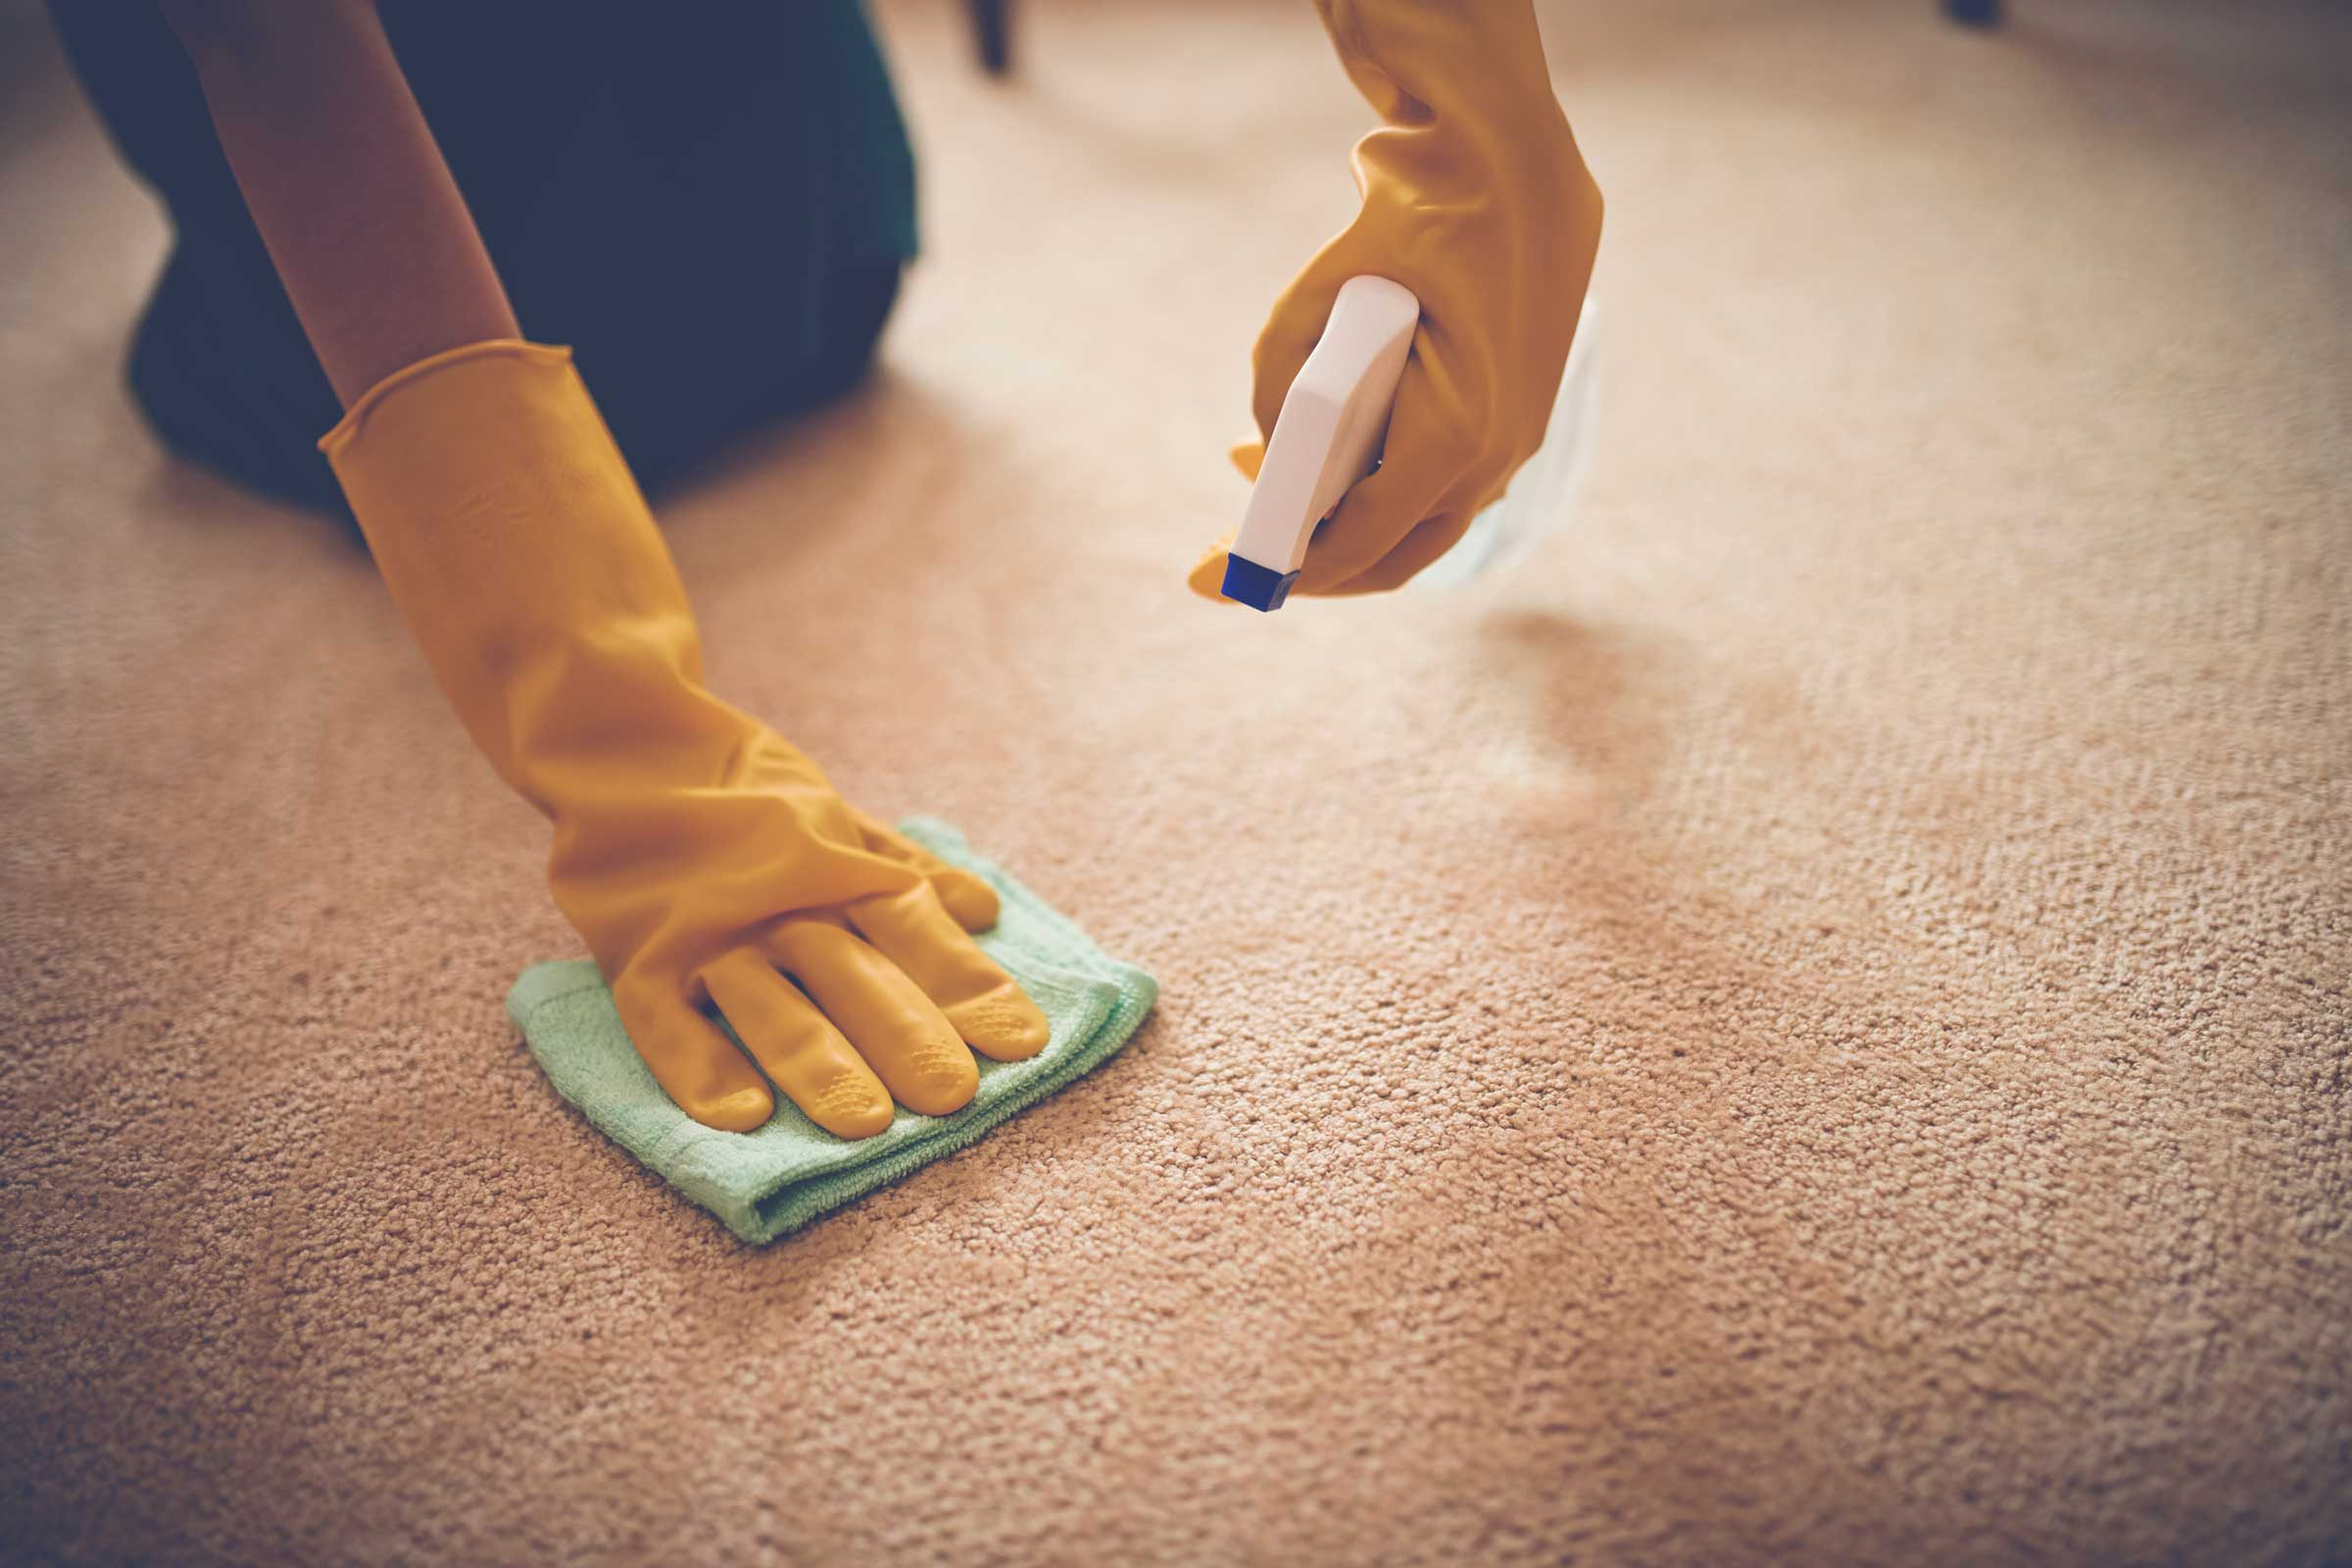 carpet stain removers 17 homemade diy cleaning solutions carpet stain removers 17 homemade diy cleaning solutions reader s digest